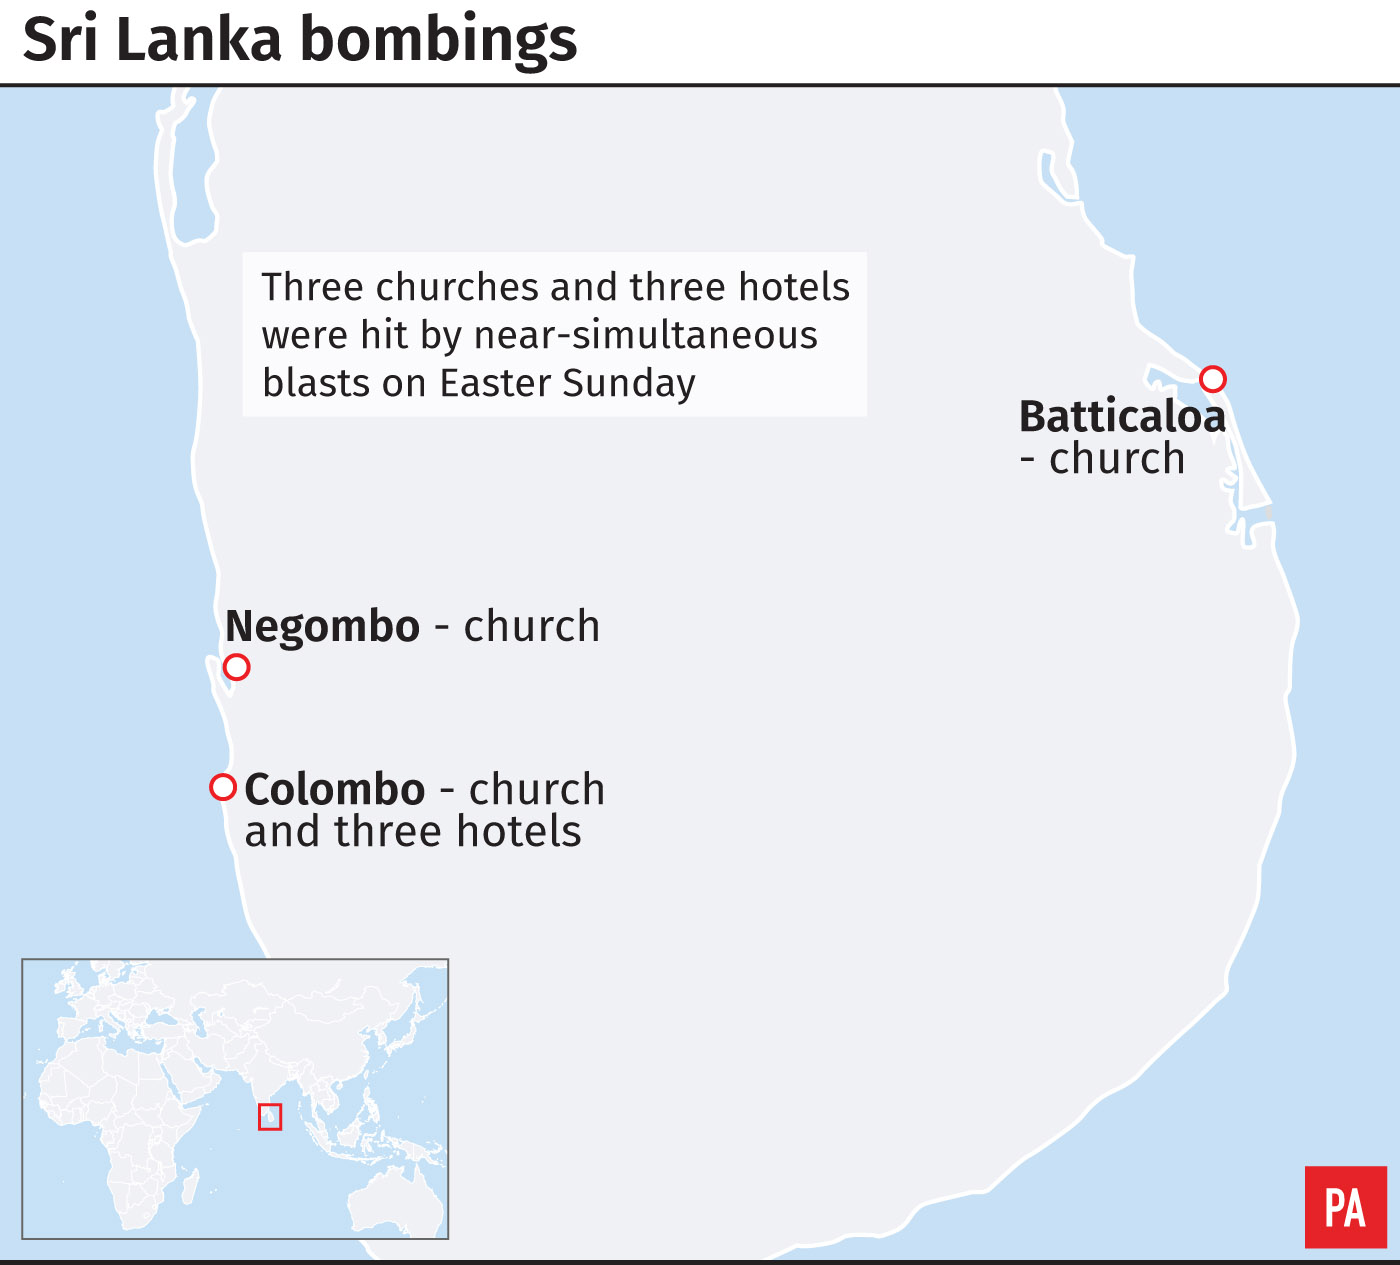 Location of Sri Lanka bombings